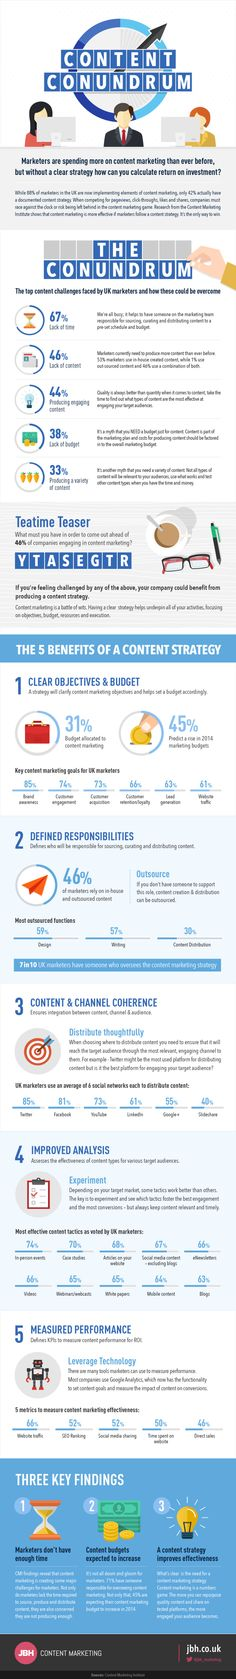 Content Marketing Conundrum Infographic: Why and How you should create meaningful content.